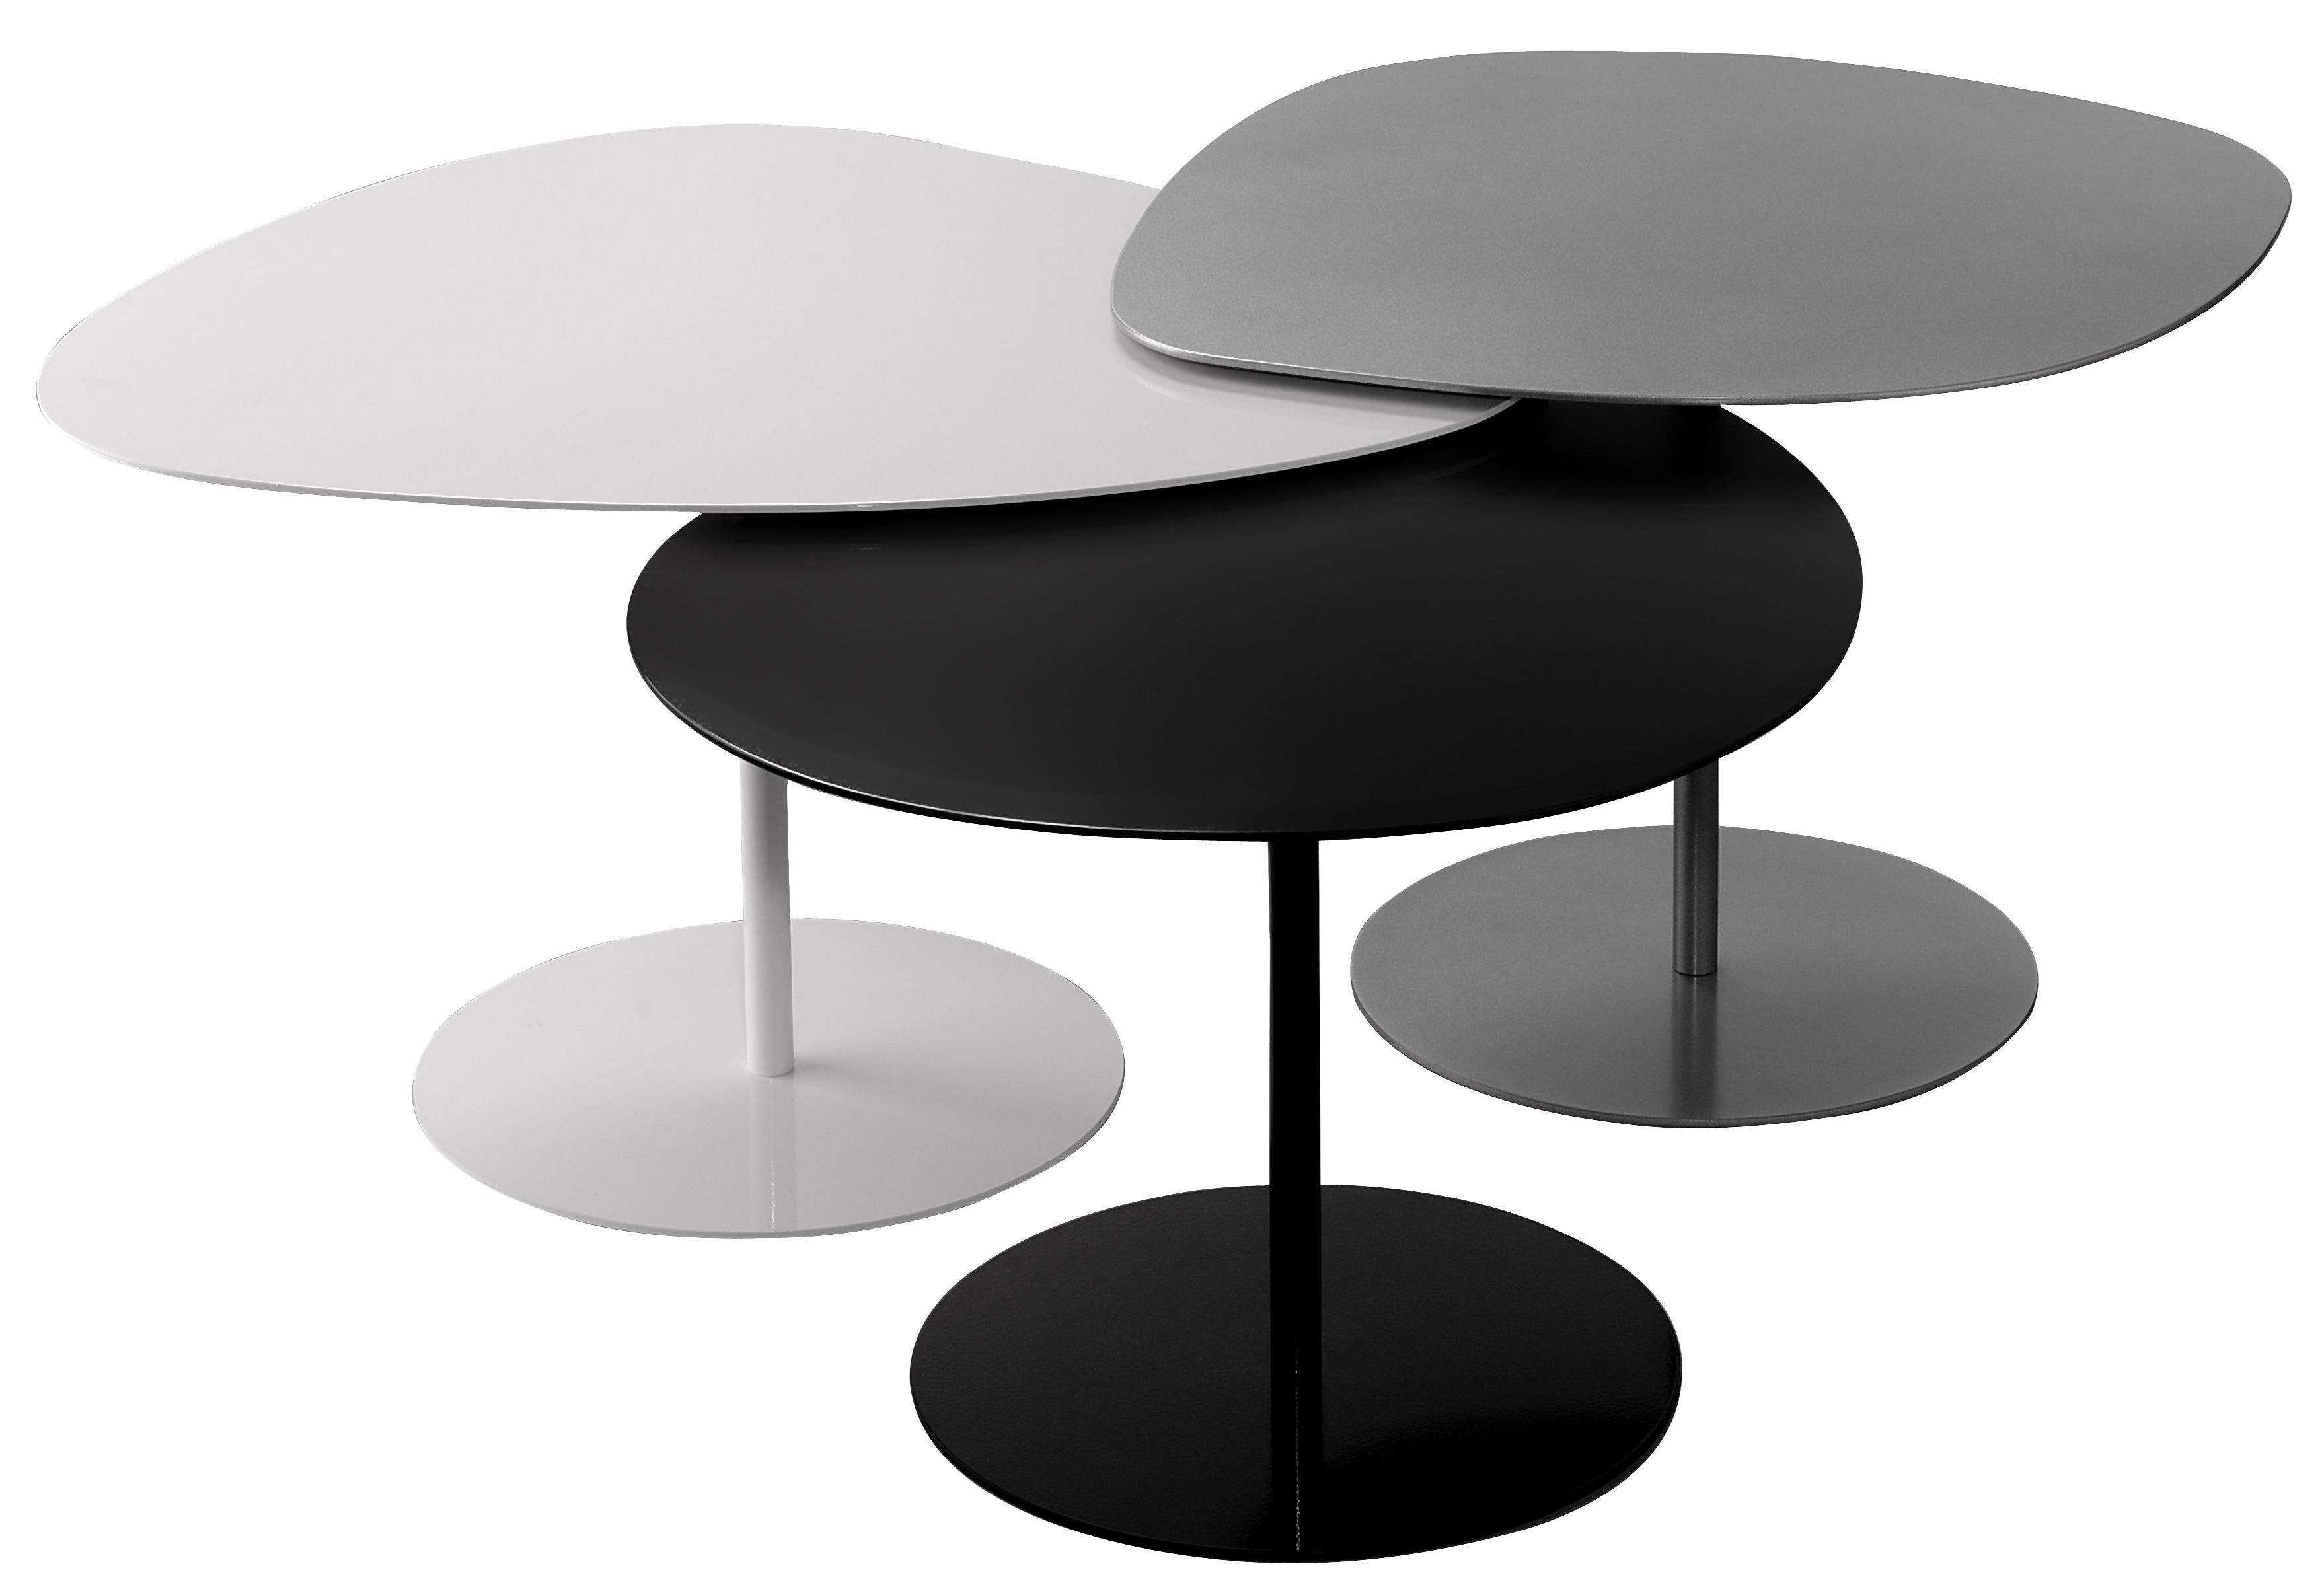 Furniture - Coffee Tables - Galet INDOOR Nested tables by Matière Grise - Black, White, Grey - Steel